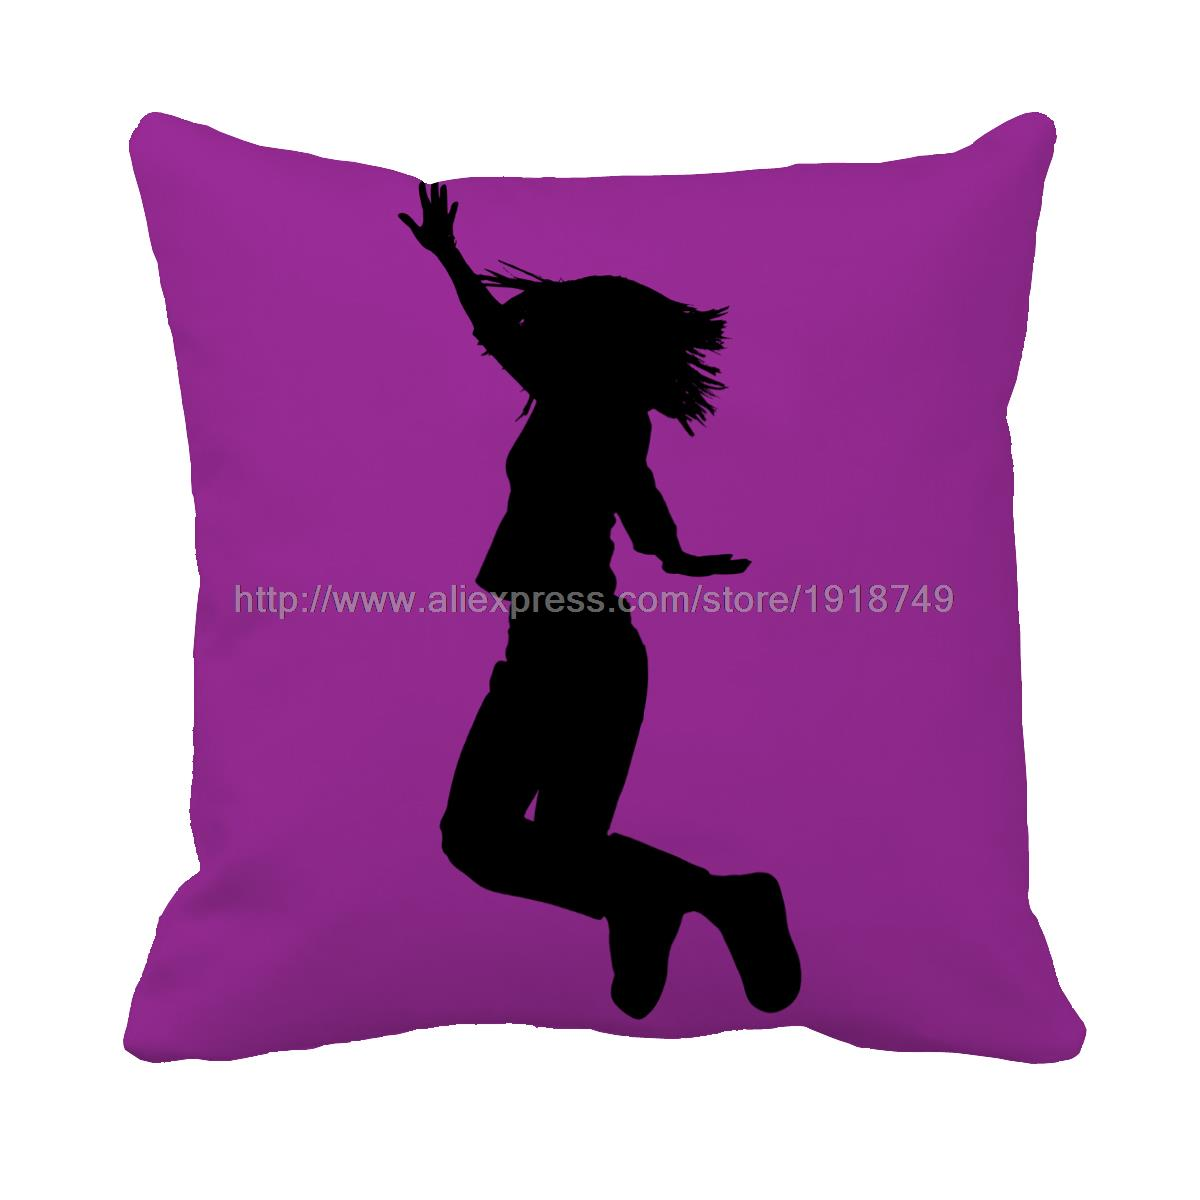 online get cheap purple throw pillow aliexpresscom  alibaba group - girl shadow jump printed custom purple cushion cover home sofa chair decorativethrow pillow case(